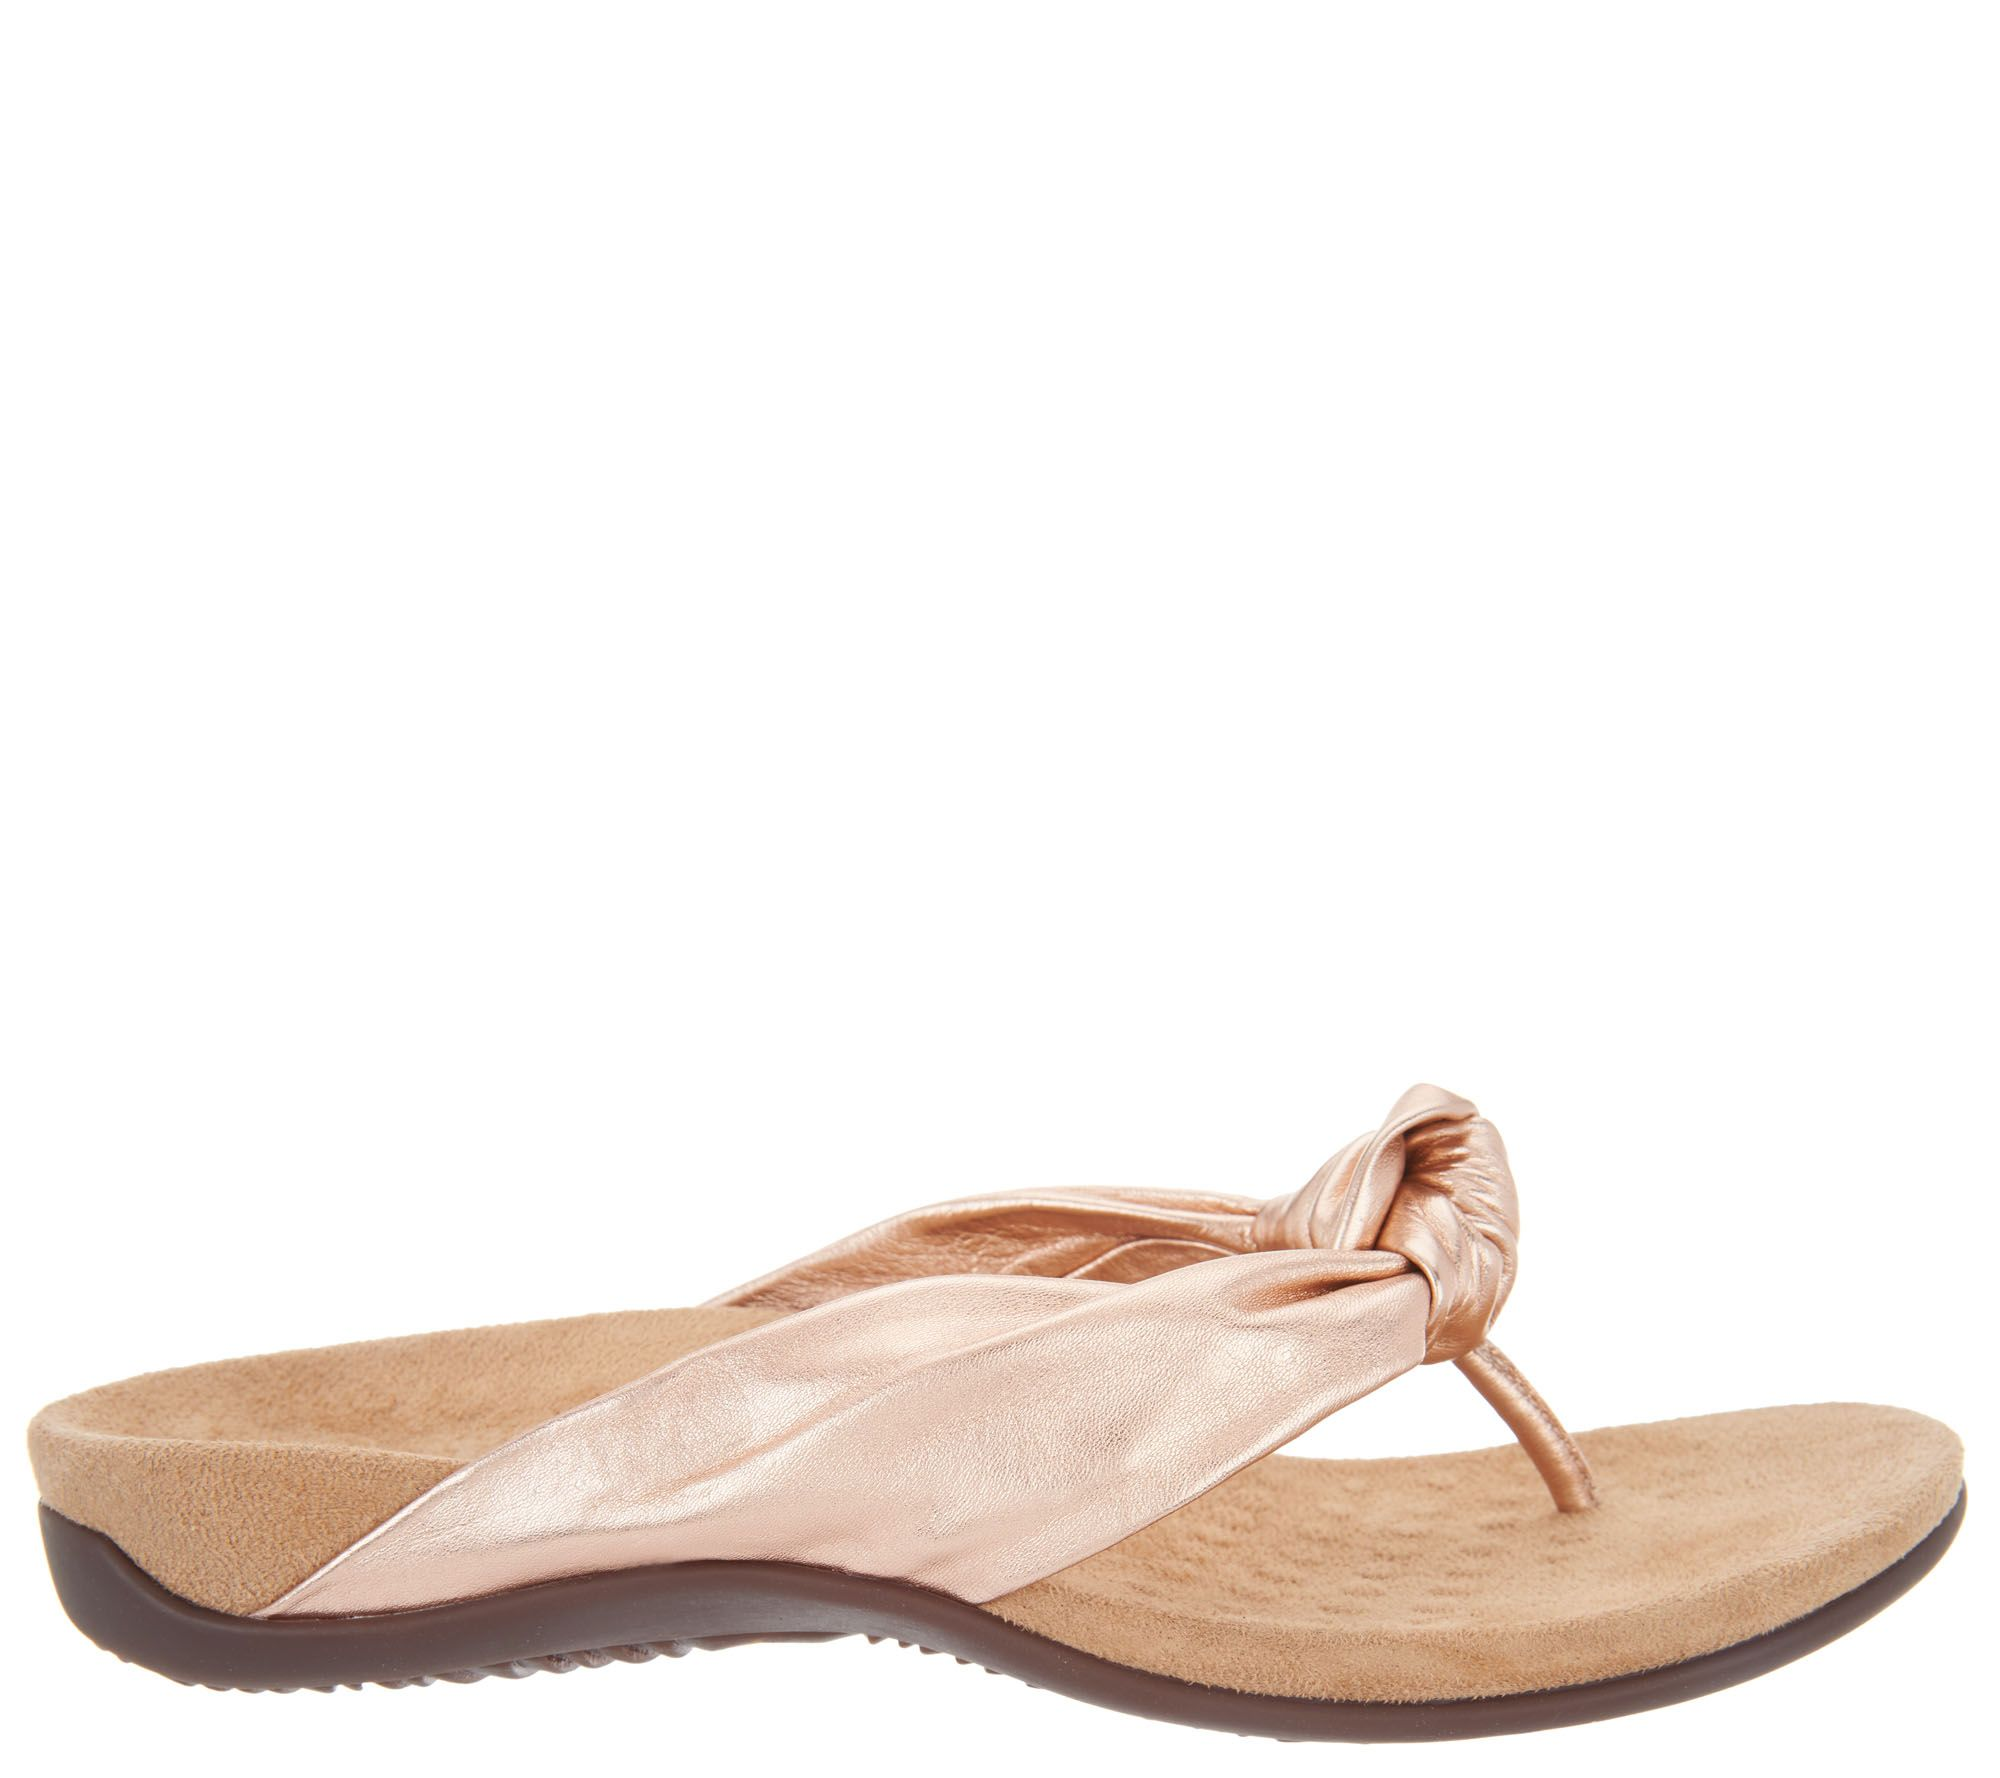 09fb759866df Vionic Leather Knotted Thong Sandals - Pippa - Page 1 — QVC.com